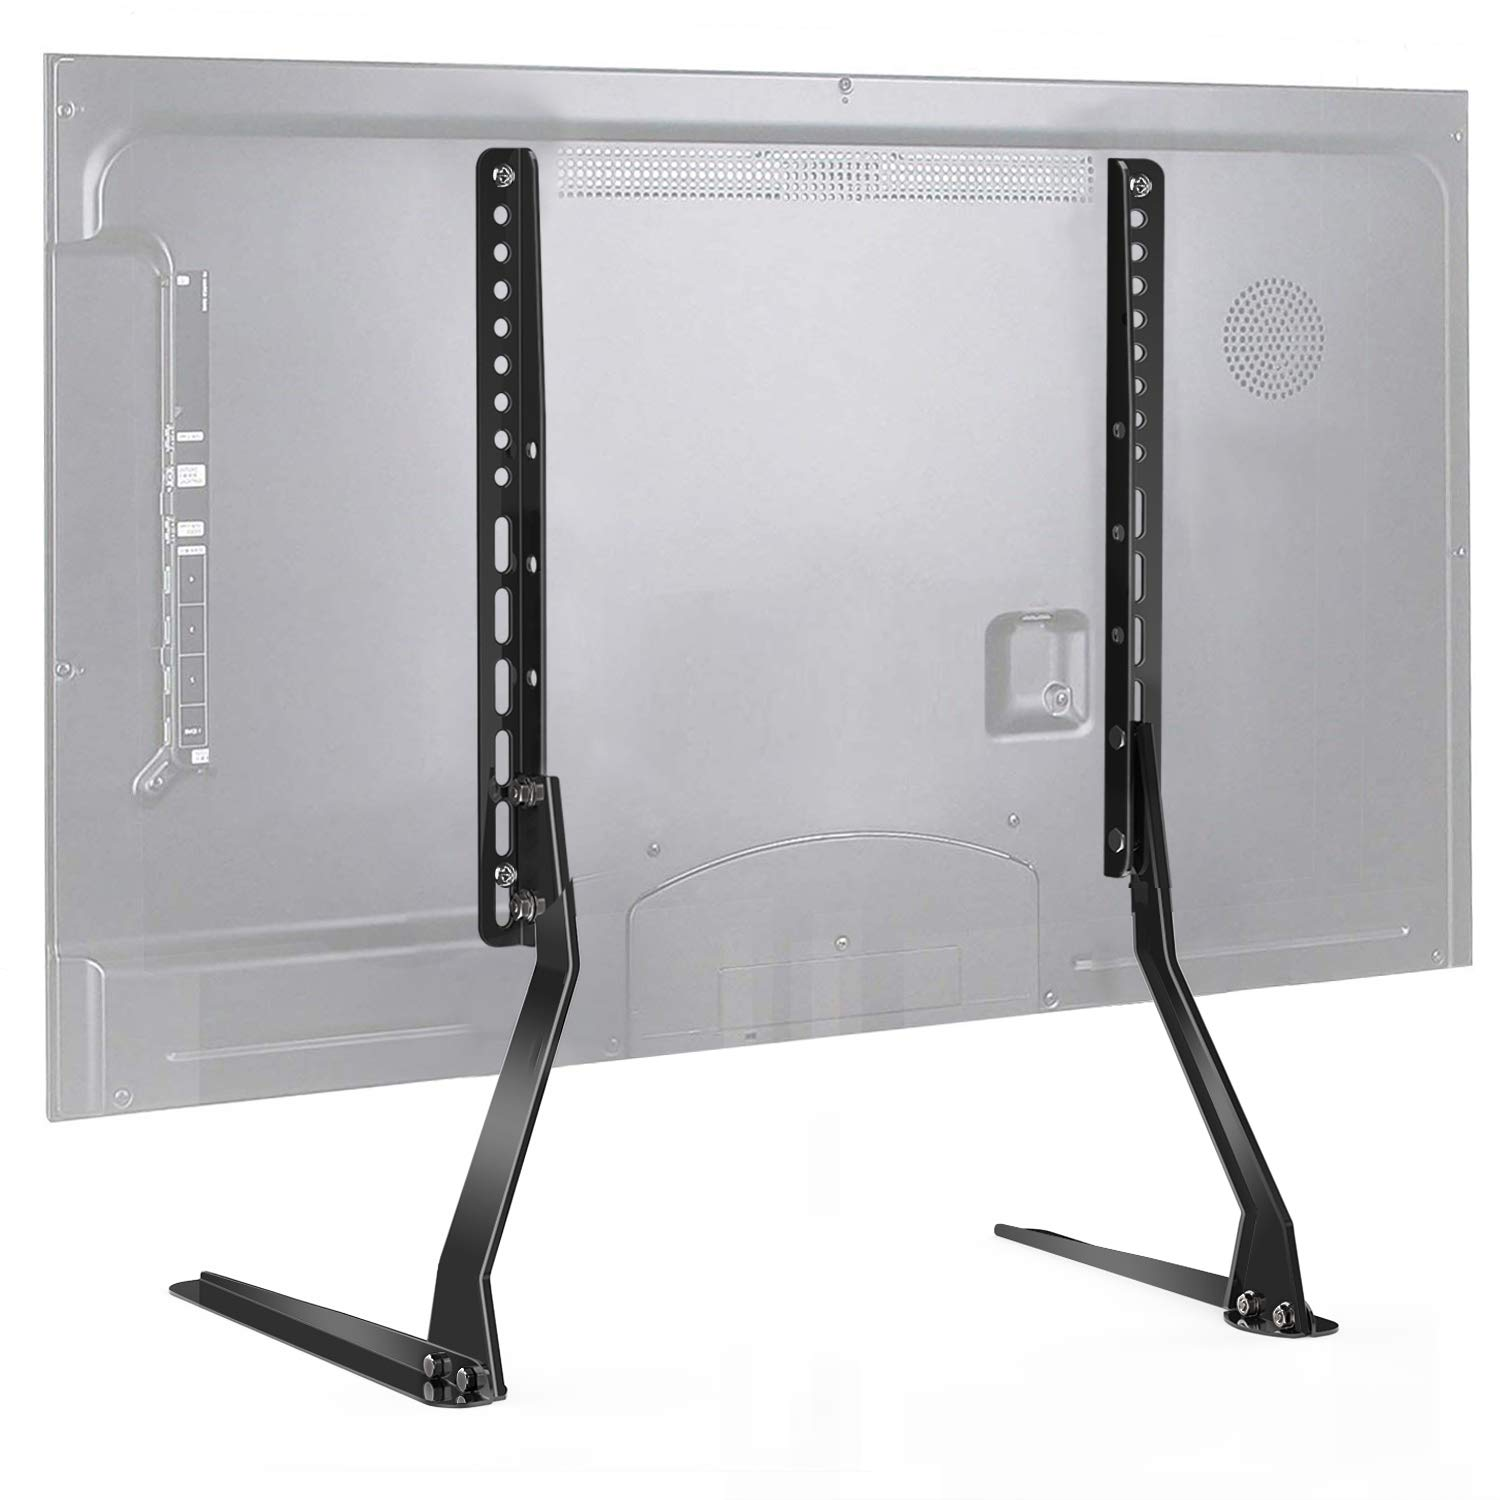 PERLESMITH Universal Table Top TV Stand for 37 - 70 Inch Flat Screen, LCD TVs Premium Height Adjustable Leg Stand Holds up to 110lbs, VESA up to 800x400mm by PERLESMITH